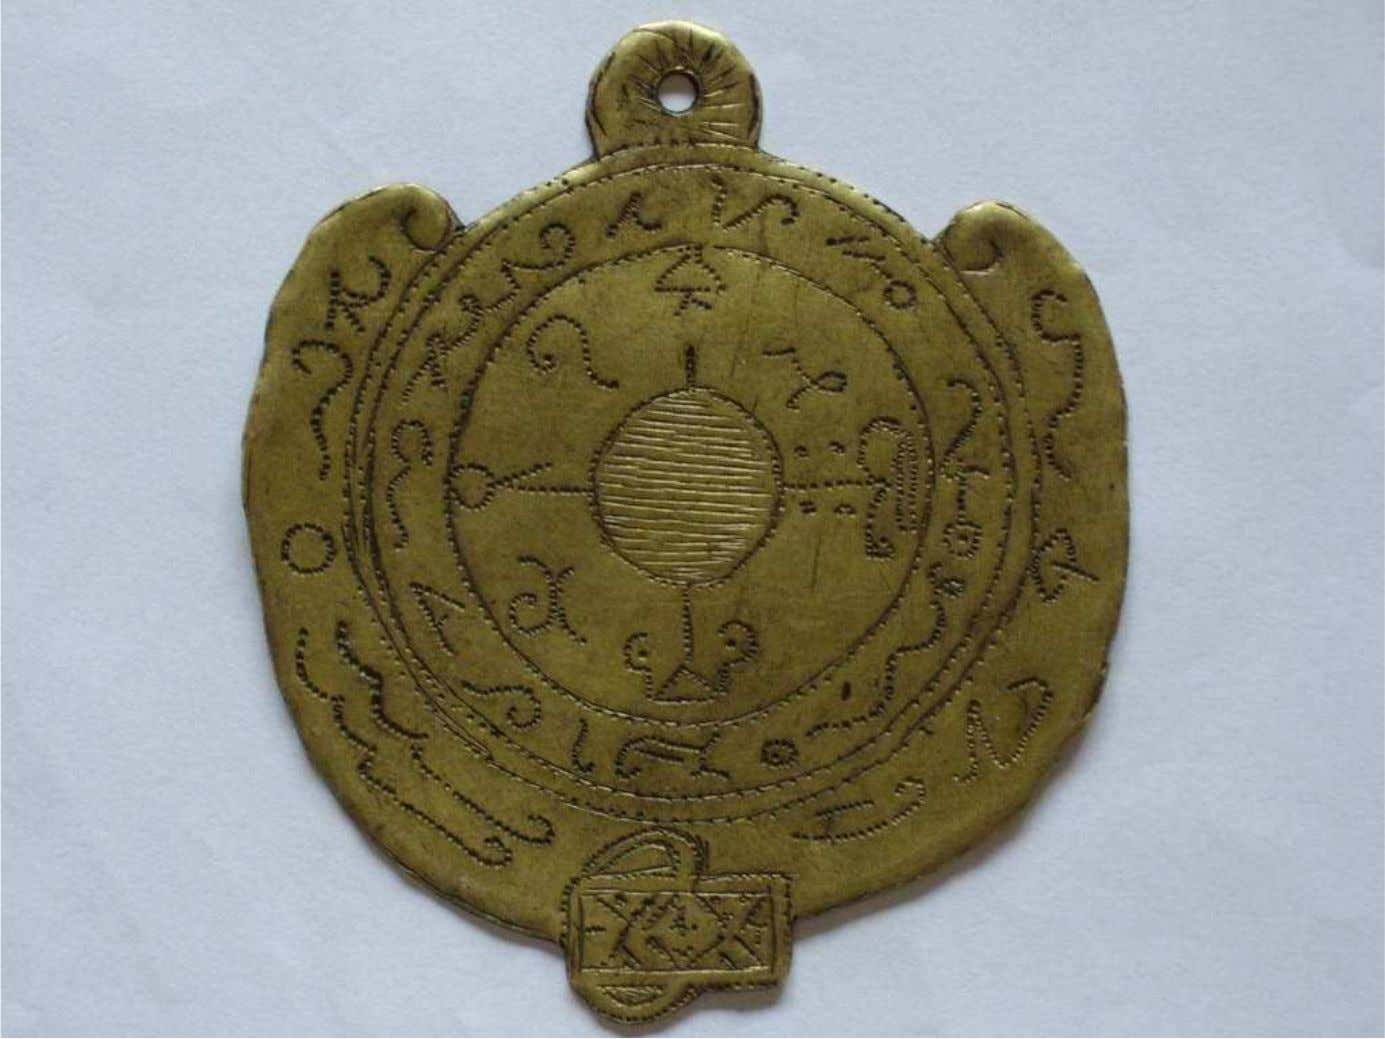 « DEVINER TALISMAN » INHERITED FROM ARABIC DJINNOLOGY White magic records about talismans (see bibliography)